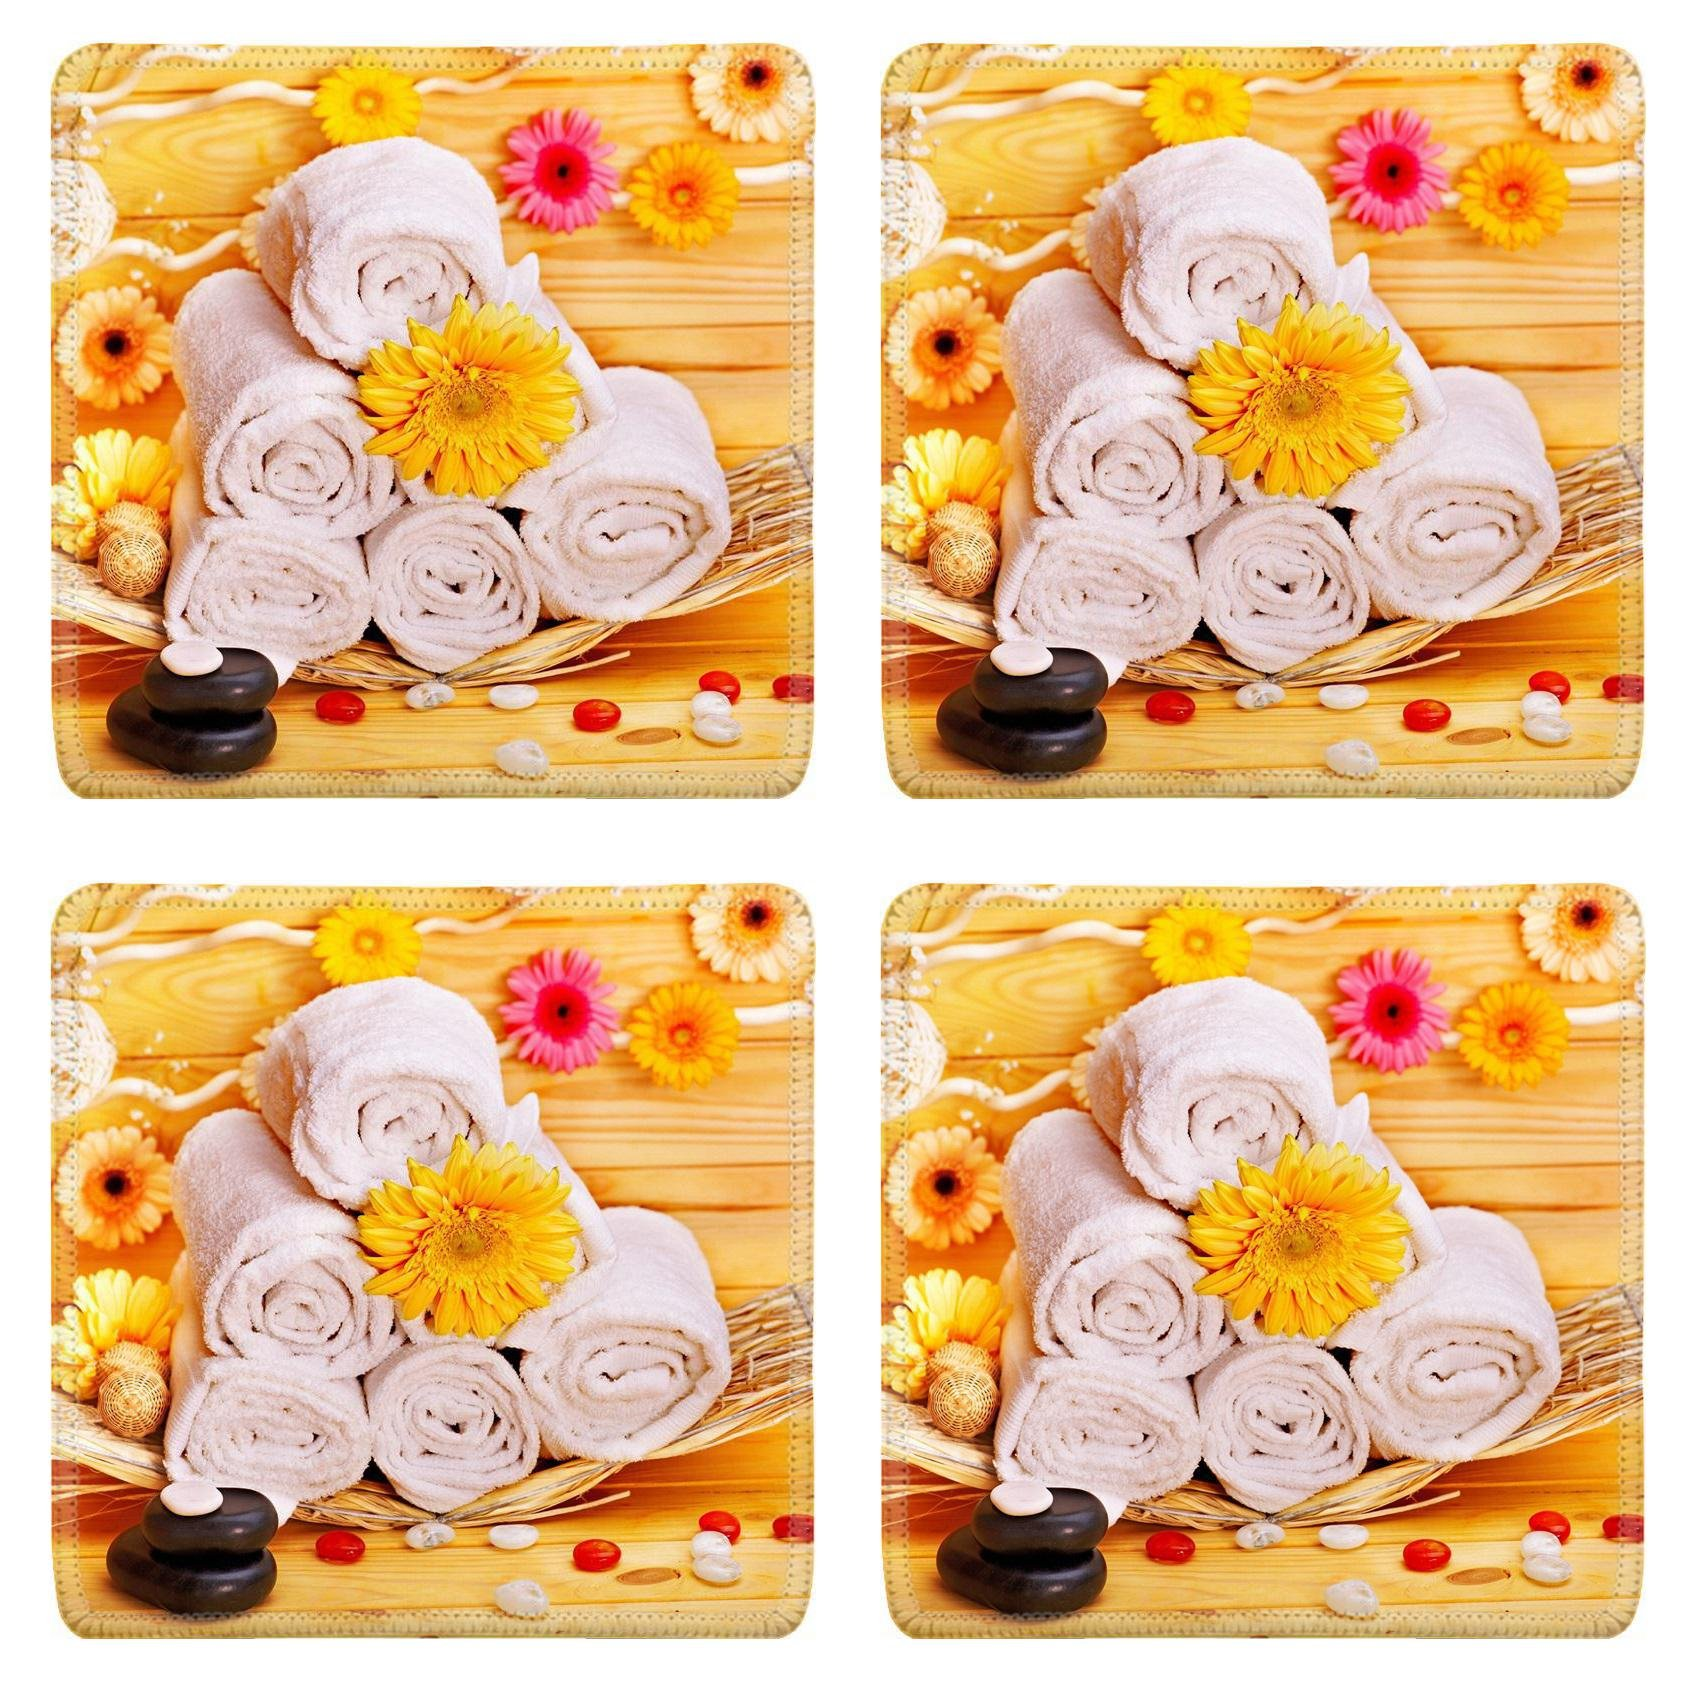 Liili Square Coasters Non-Slip Natural Rubber Desk Pads IMAGE ID: 16103644 Spa still life with towel and stone in wood spa